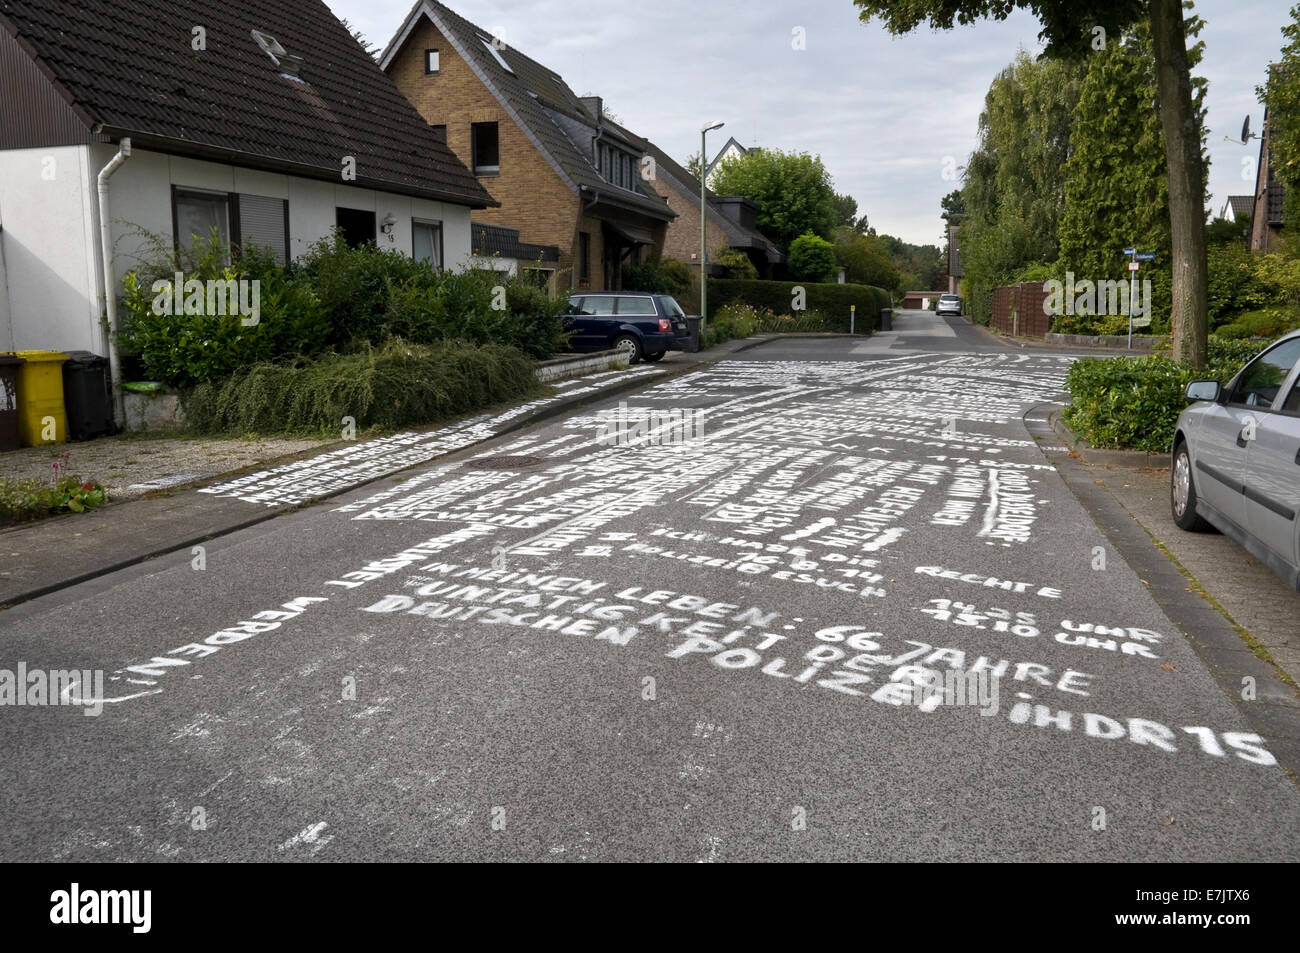 Writing on the road, a protest in a residential area in Germany. - Stock Image